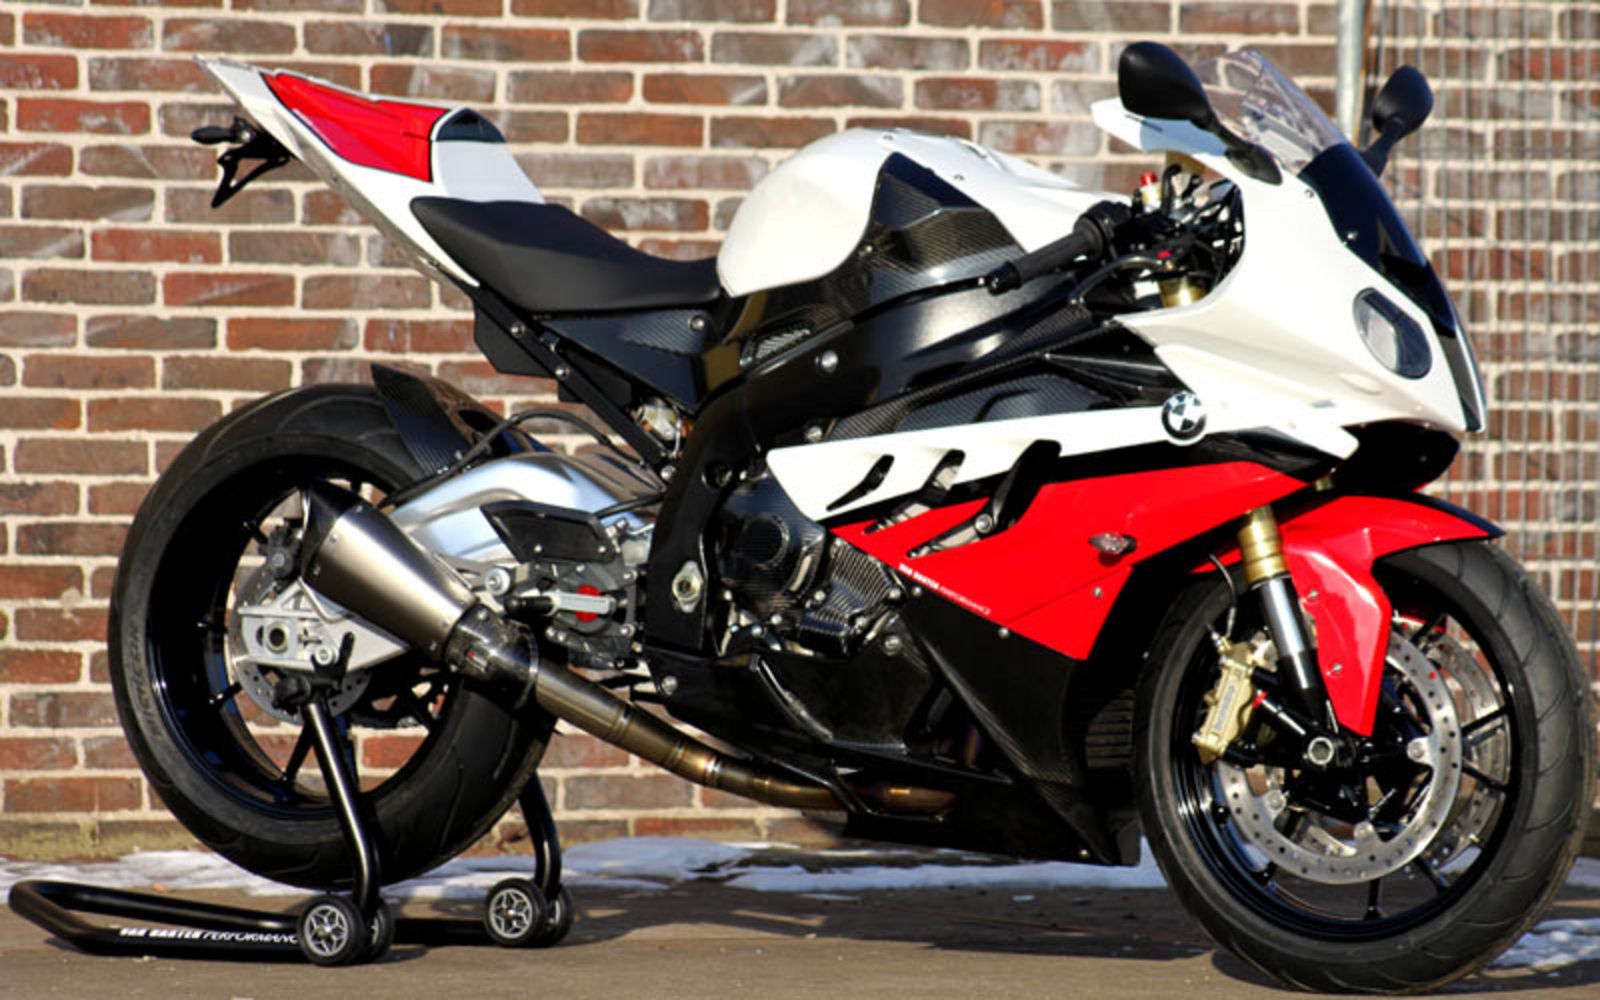 210bhp bmw s1000rr by van harten performance news. Black Bedroom Furniture Sets. Home Design Ideas